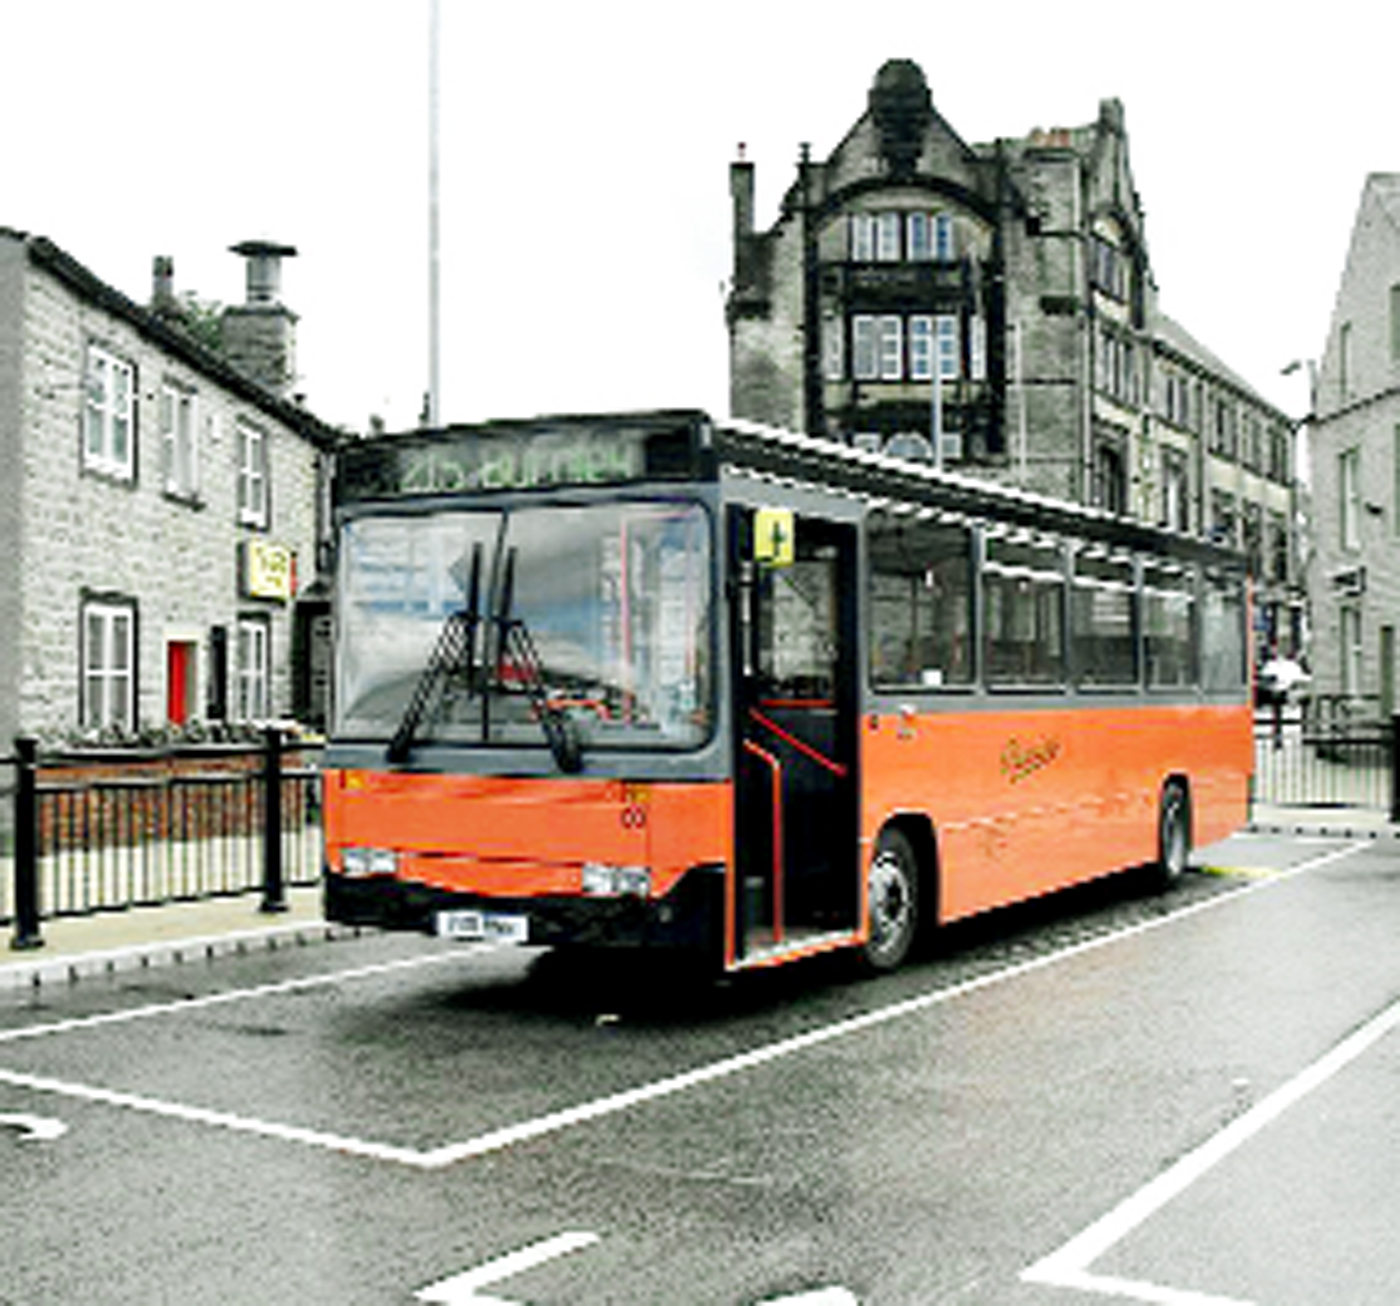 Talks under way to replace vital bus link between Ingleton and Skipton